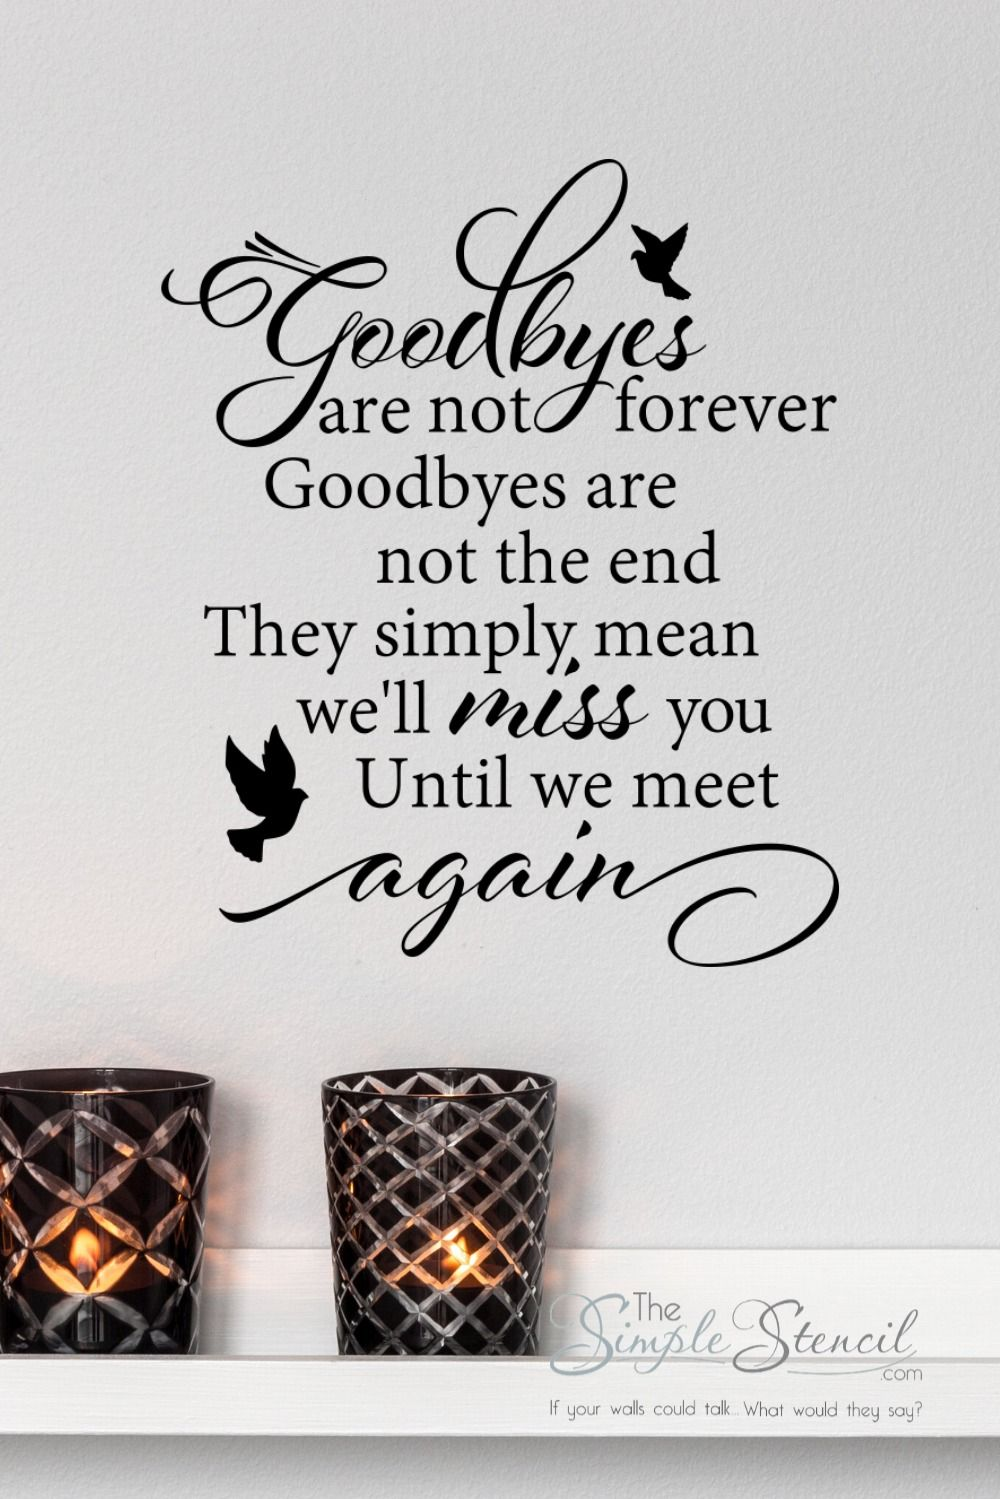 Goodbyes Are Not Forever Memorial Picture Wall Quote Decal In 2020 Wall Quotes Decals Wall Quotes Vinyl Wall Quotes